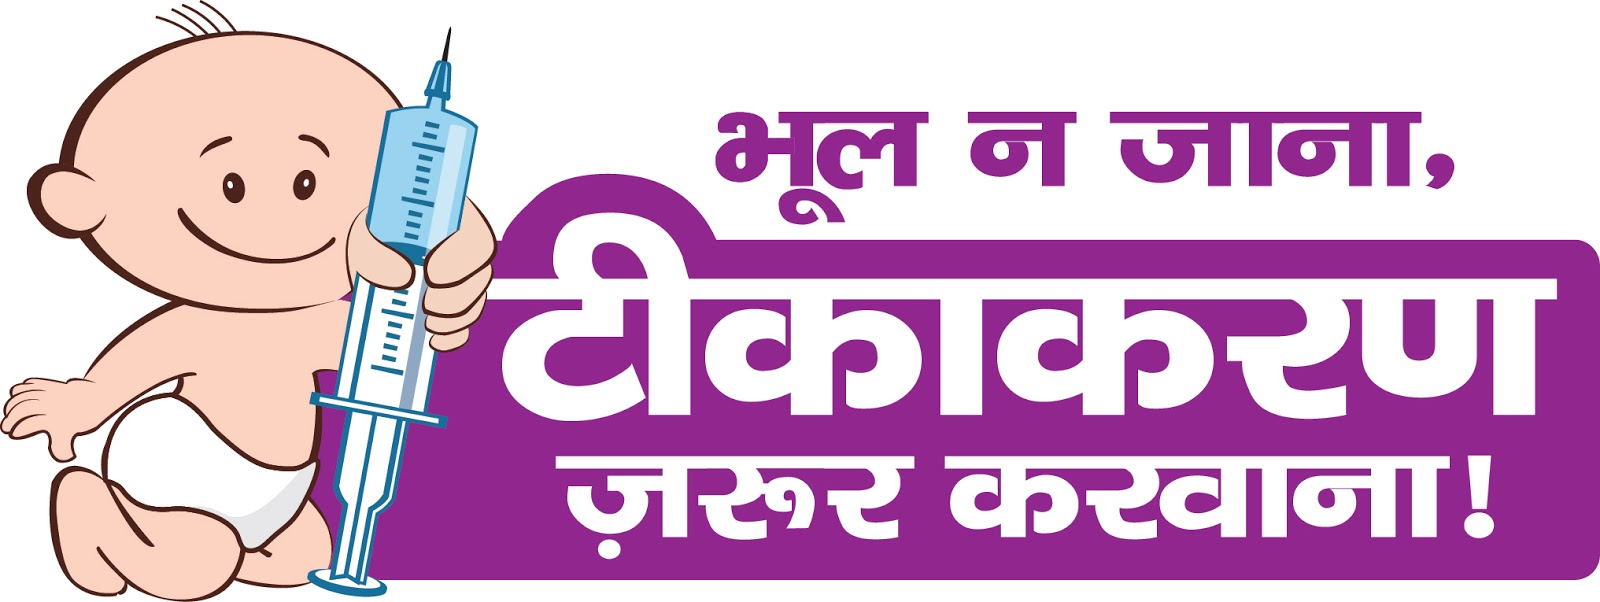 Polio Eradication Slogans In Hindi